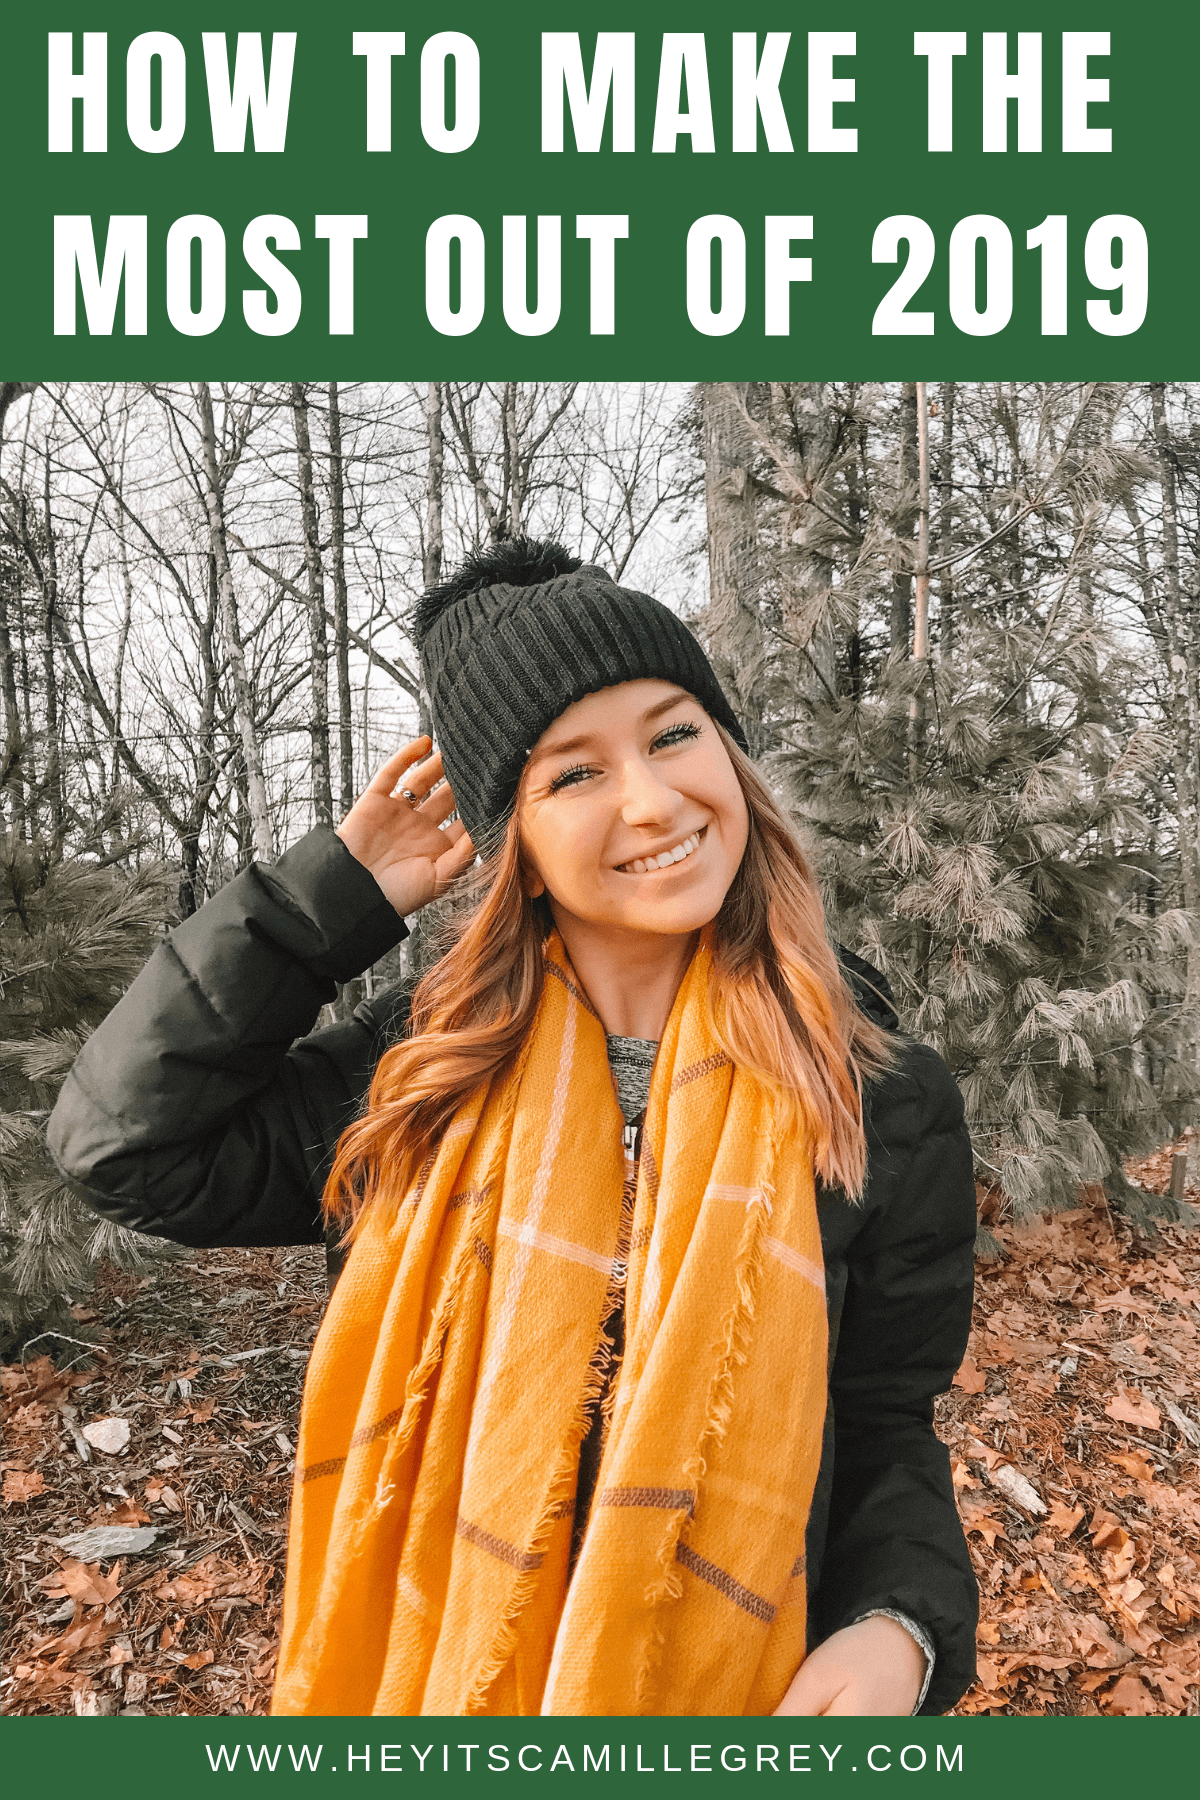 How to Make the Most out of 2019 | Hey Its Camille Grey #2019 #newyear